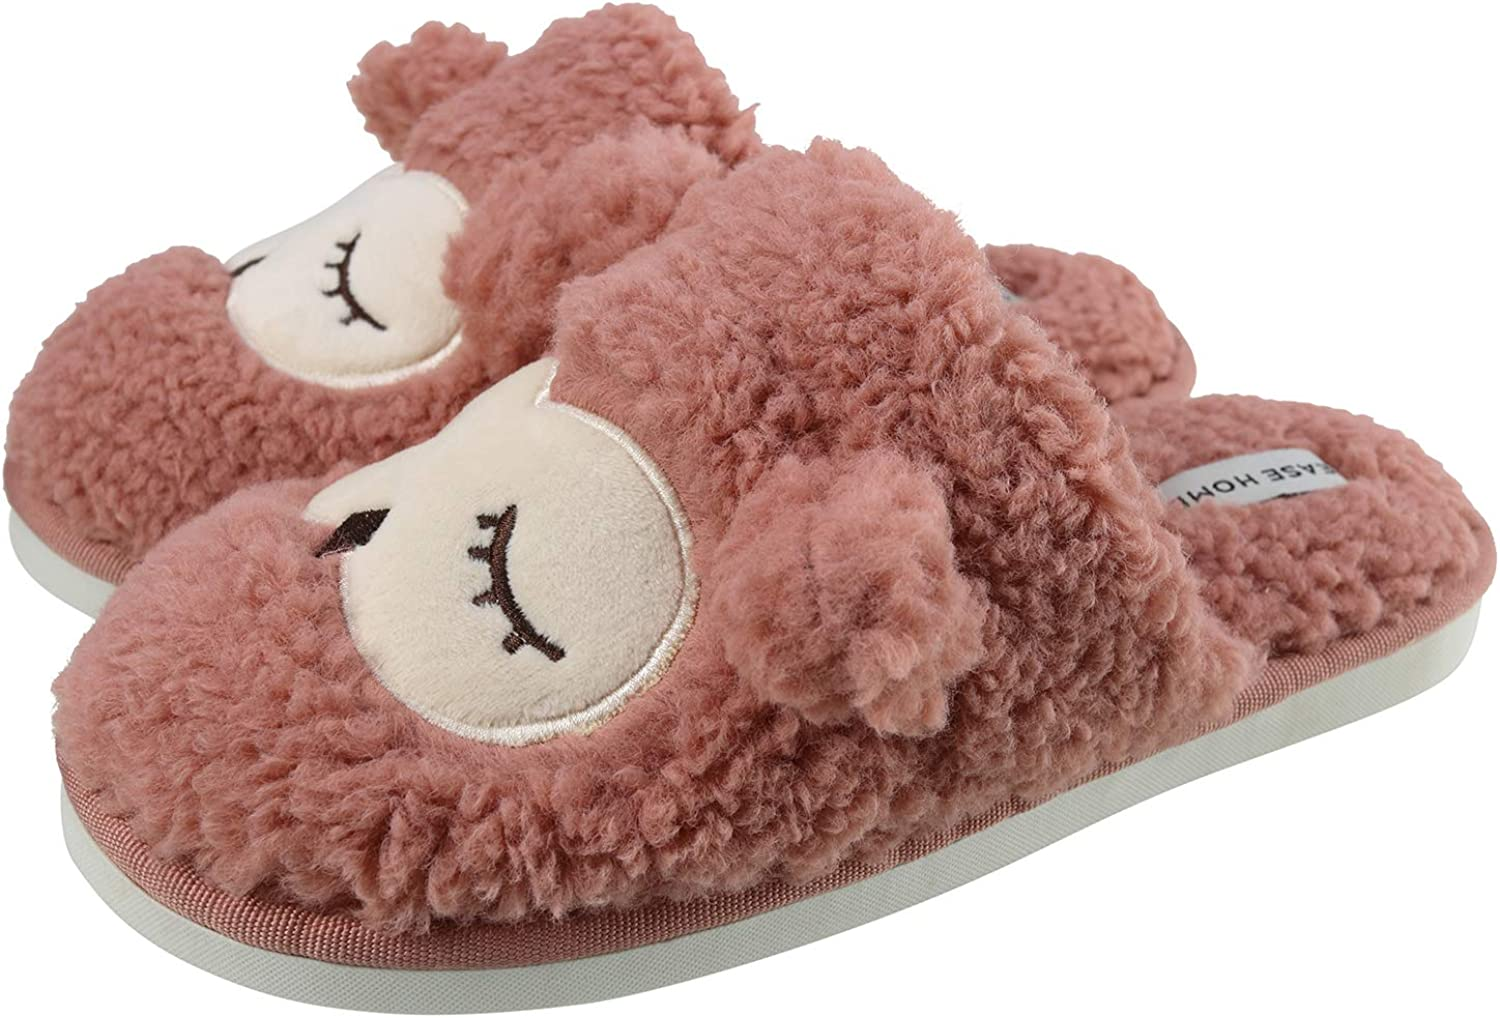 ChayChax Kids Cute House Slippers Boys Girls Warm Plush Indoor Home Slippers with Soft Anti-Skid Sole